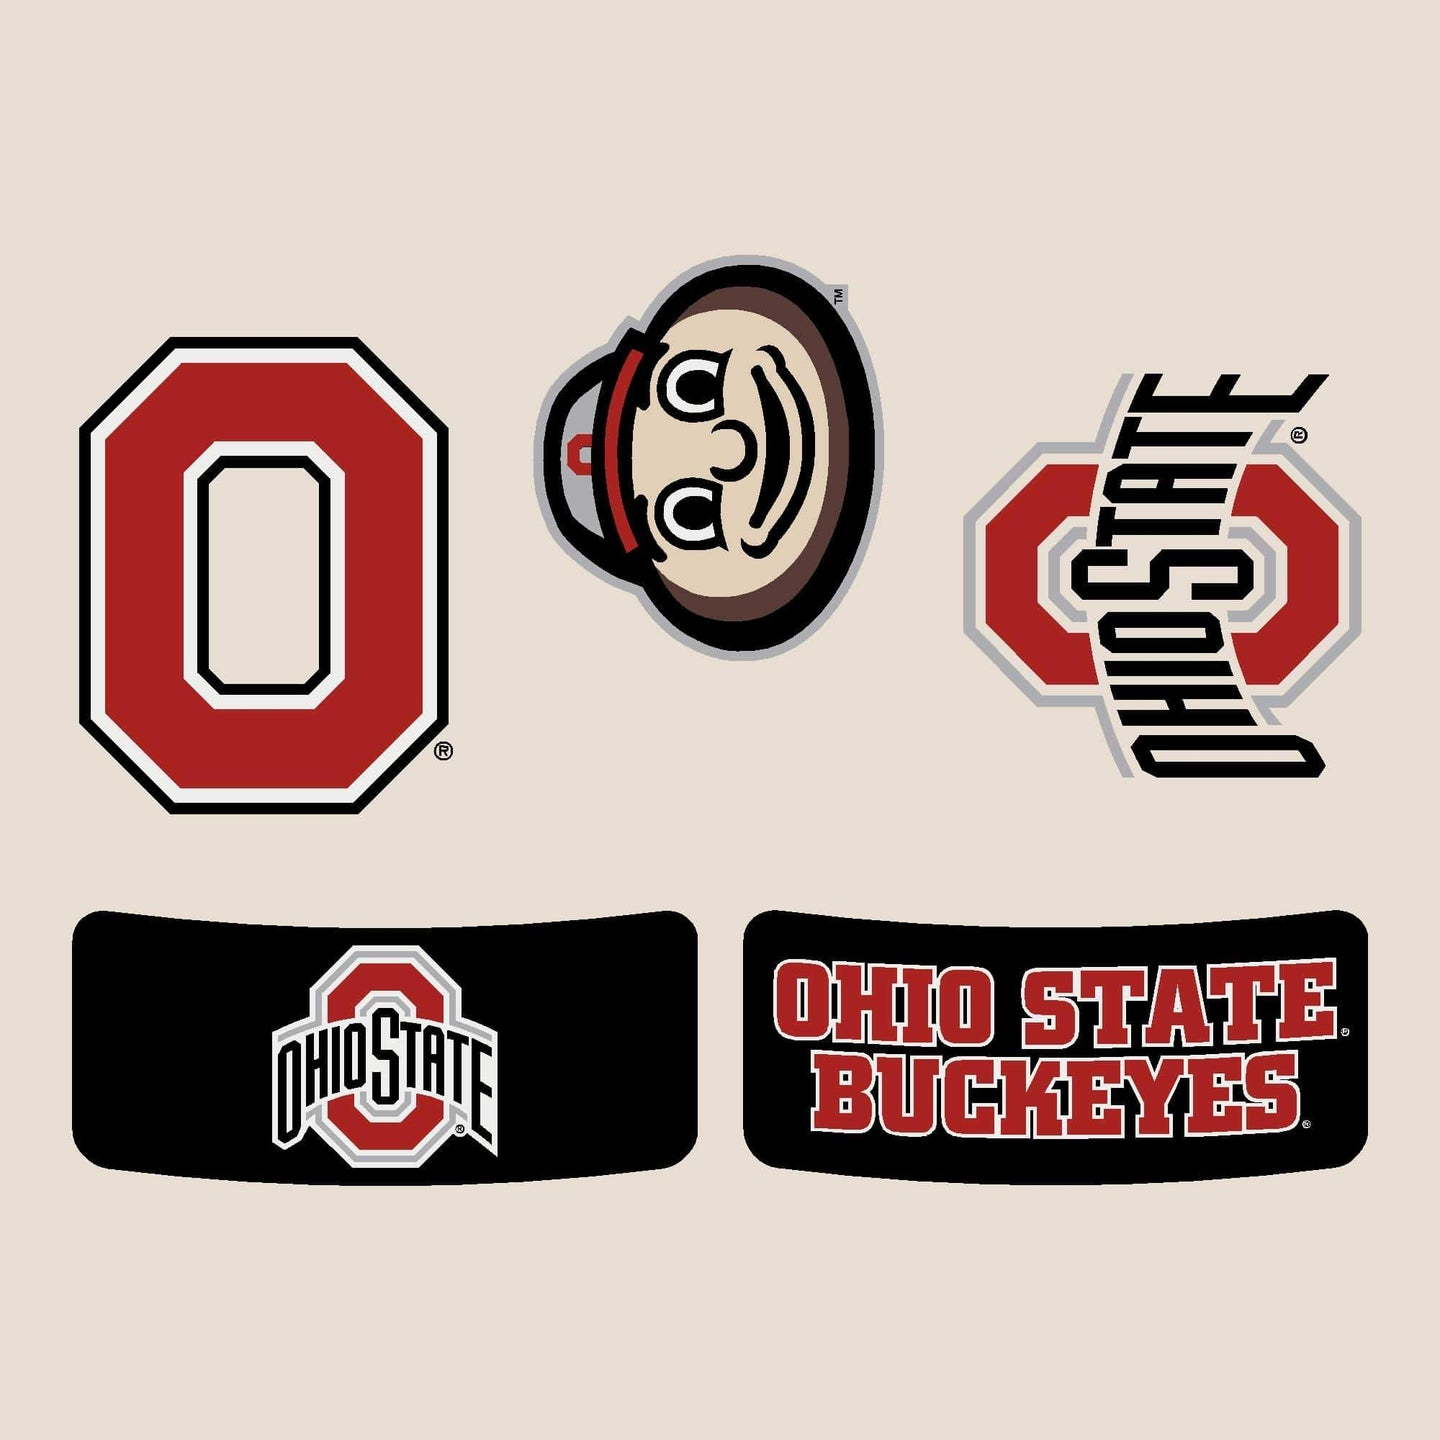 Ohio State Face and Body Tattoos - 5 Pack - Conrads College Gifts